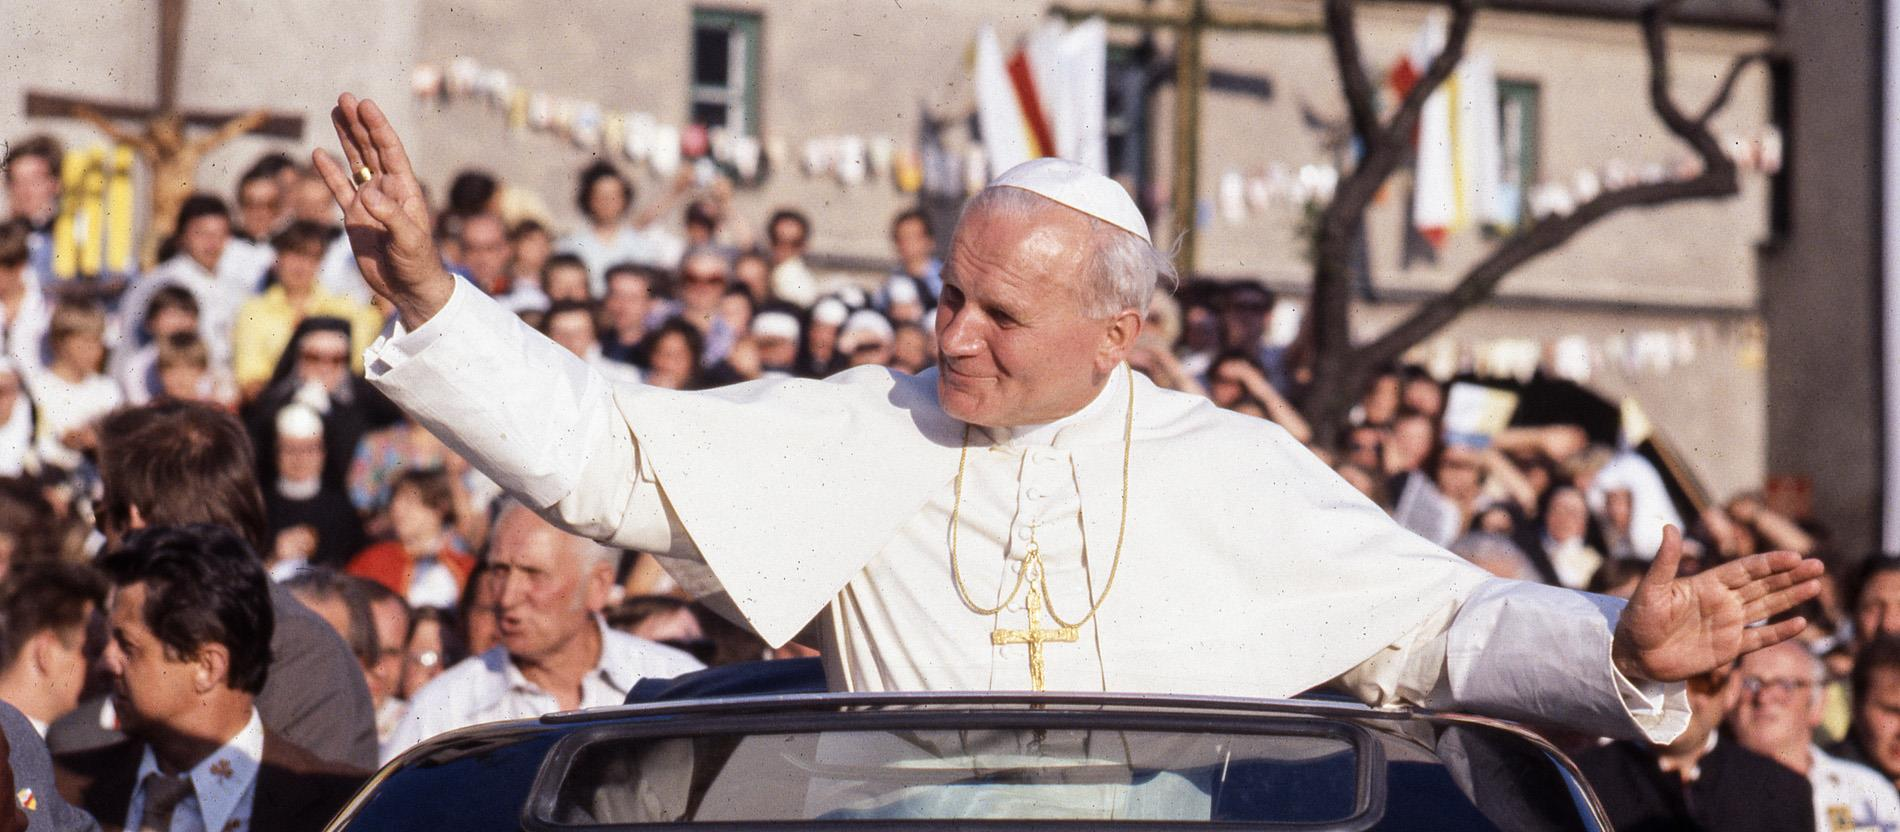 Papst Johannes Paul II. in Polen